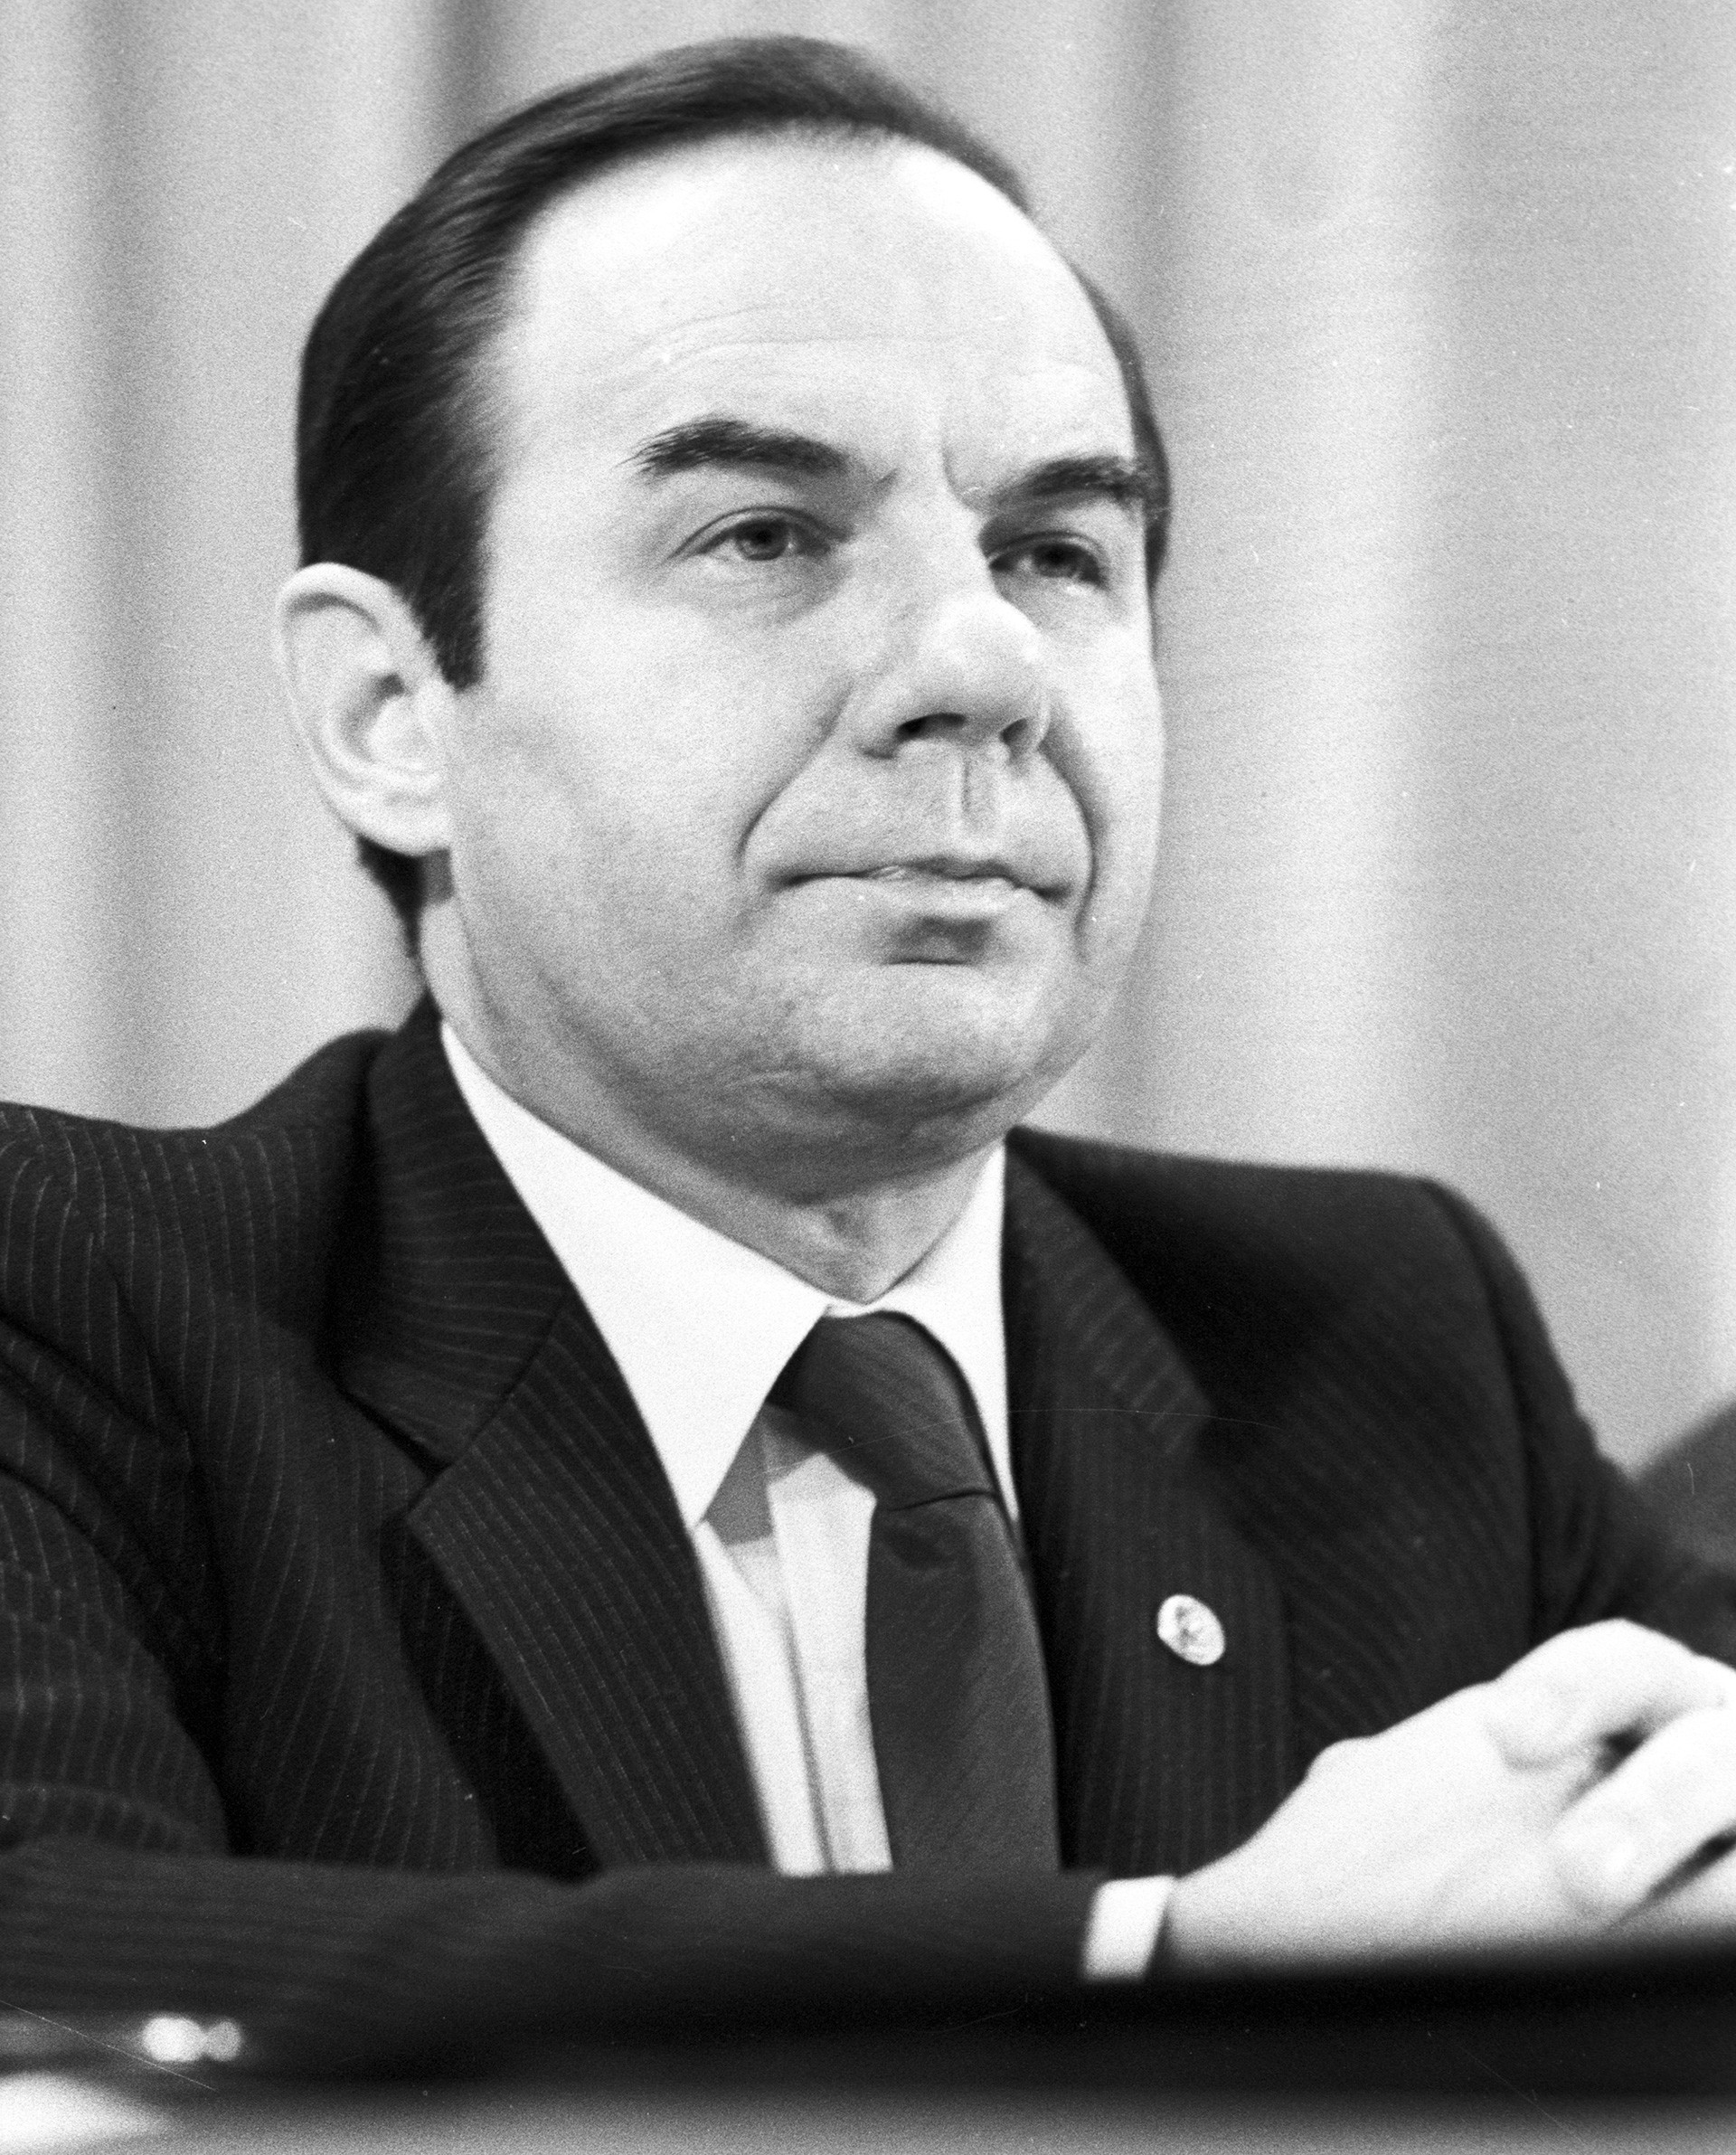 Anatoly Gromyko, a diplomat and Director of Institute for African Studies of USSR Academy of Sciences.